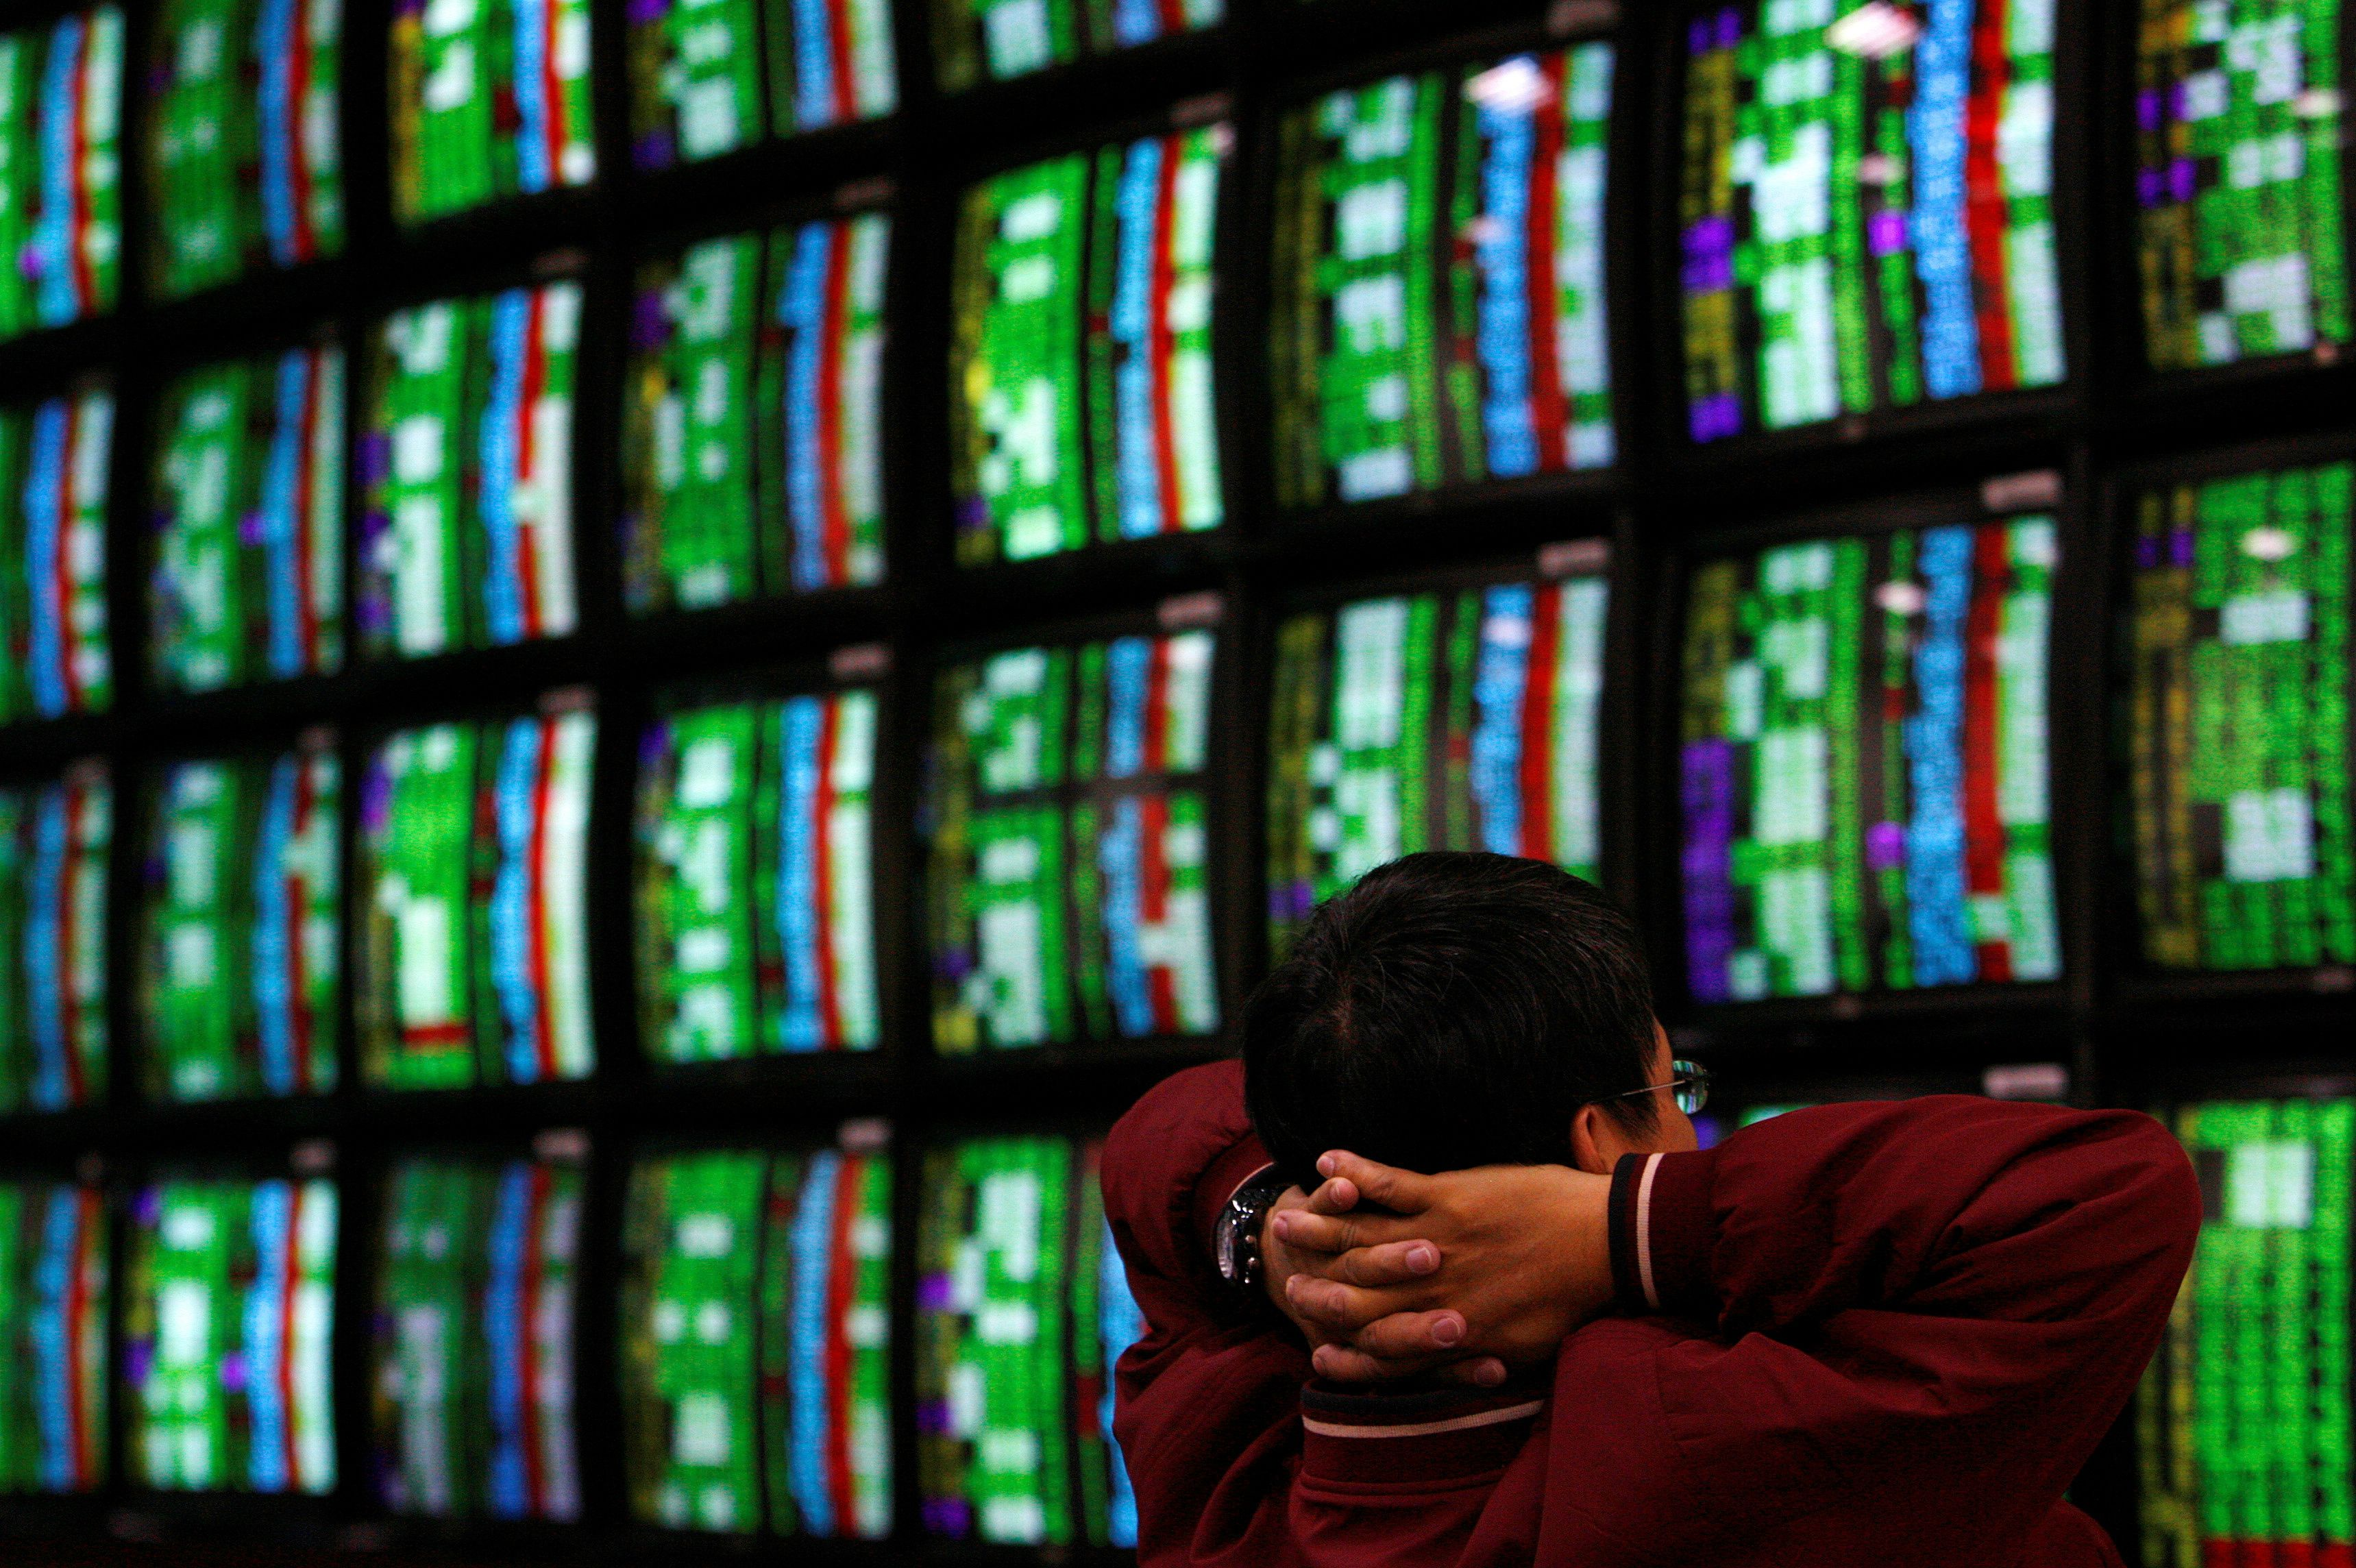 A man looks at stock market monitors in Taipei January 22, 2008. REUTERS/Nicky Loh/File Photo